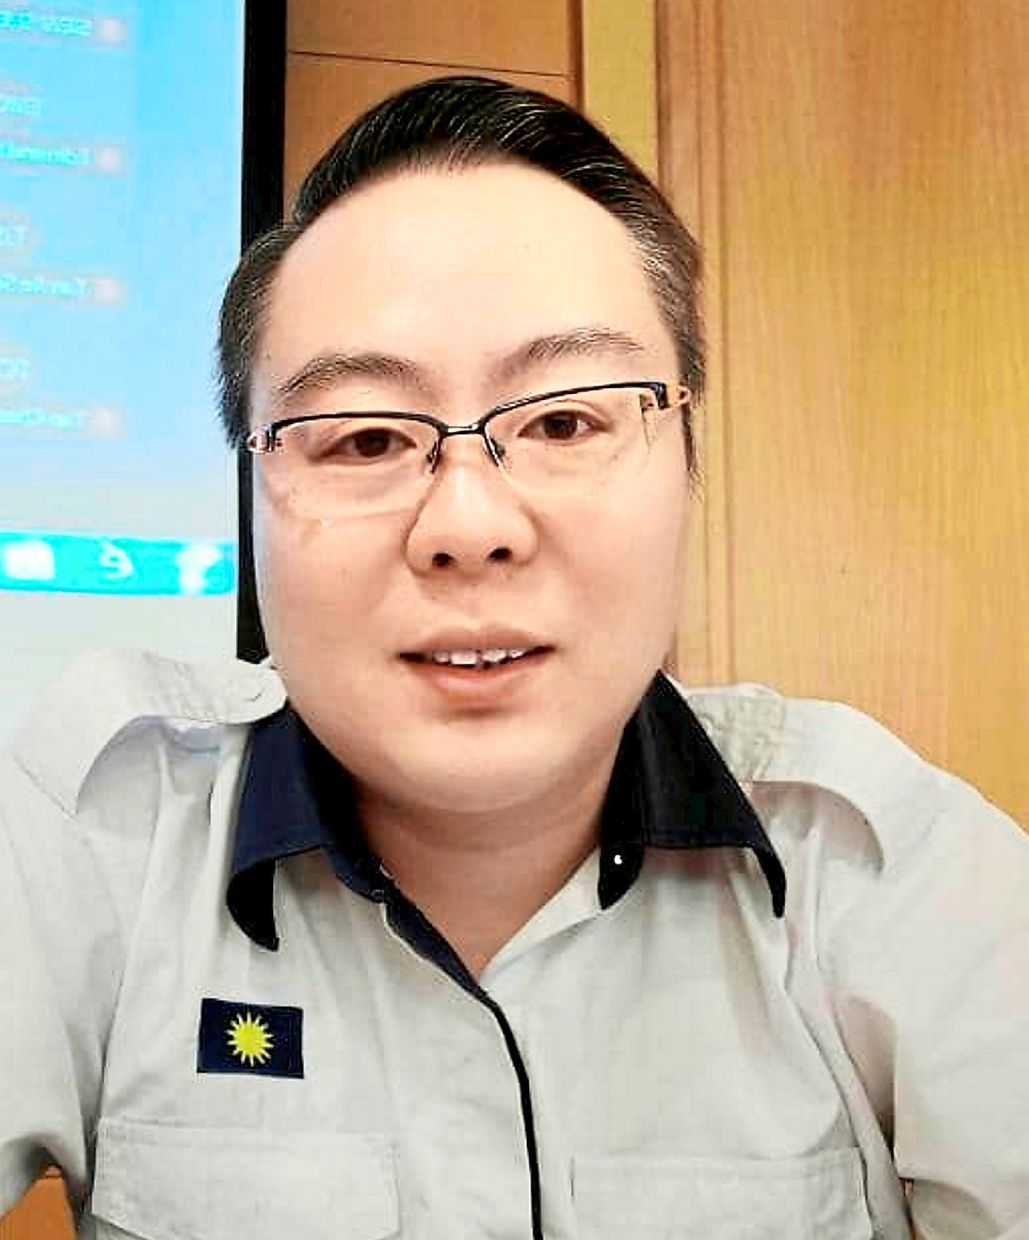 MPK and its leadership are totally disconnected from the people's hardship, says Tan.